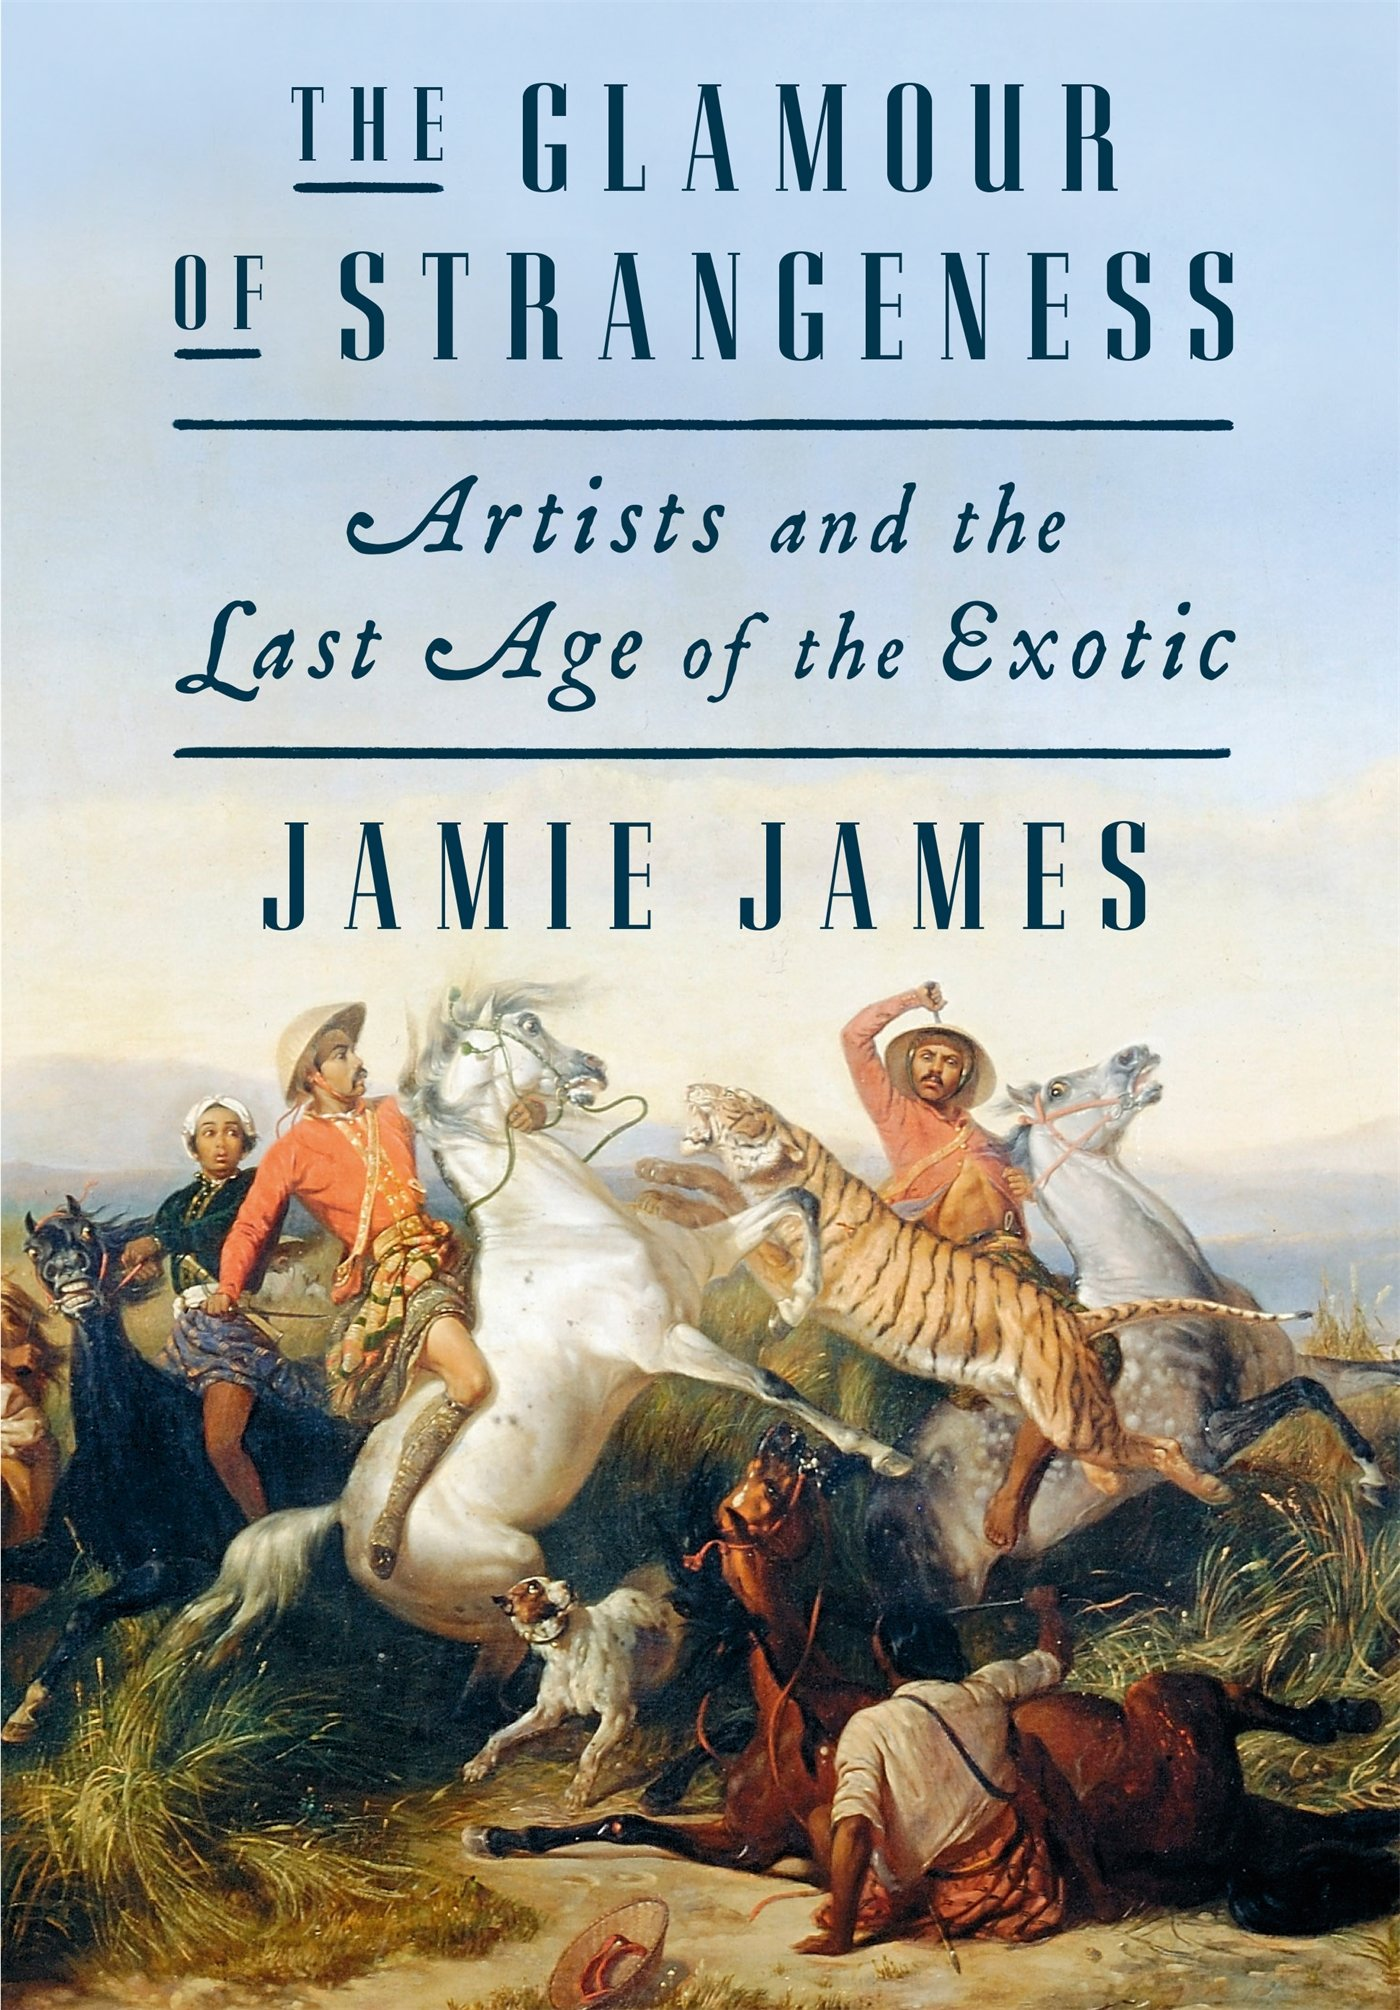 The Glamour of Strangeness: Artists and the Last Age of the Exotic , Jamie James